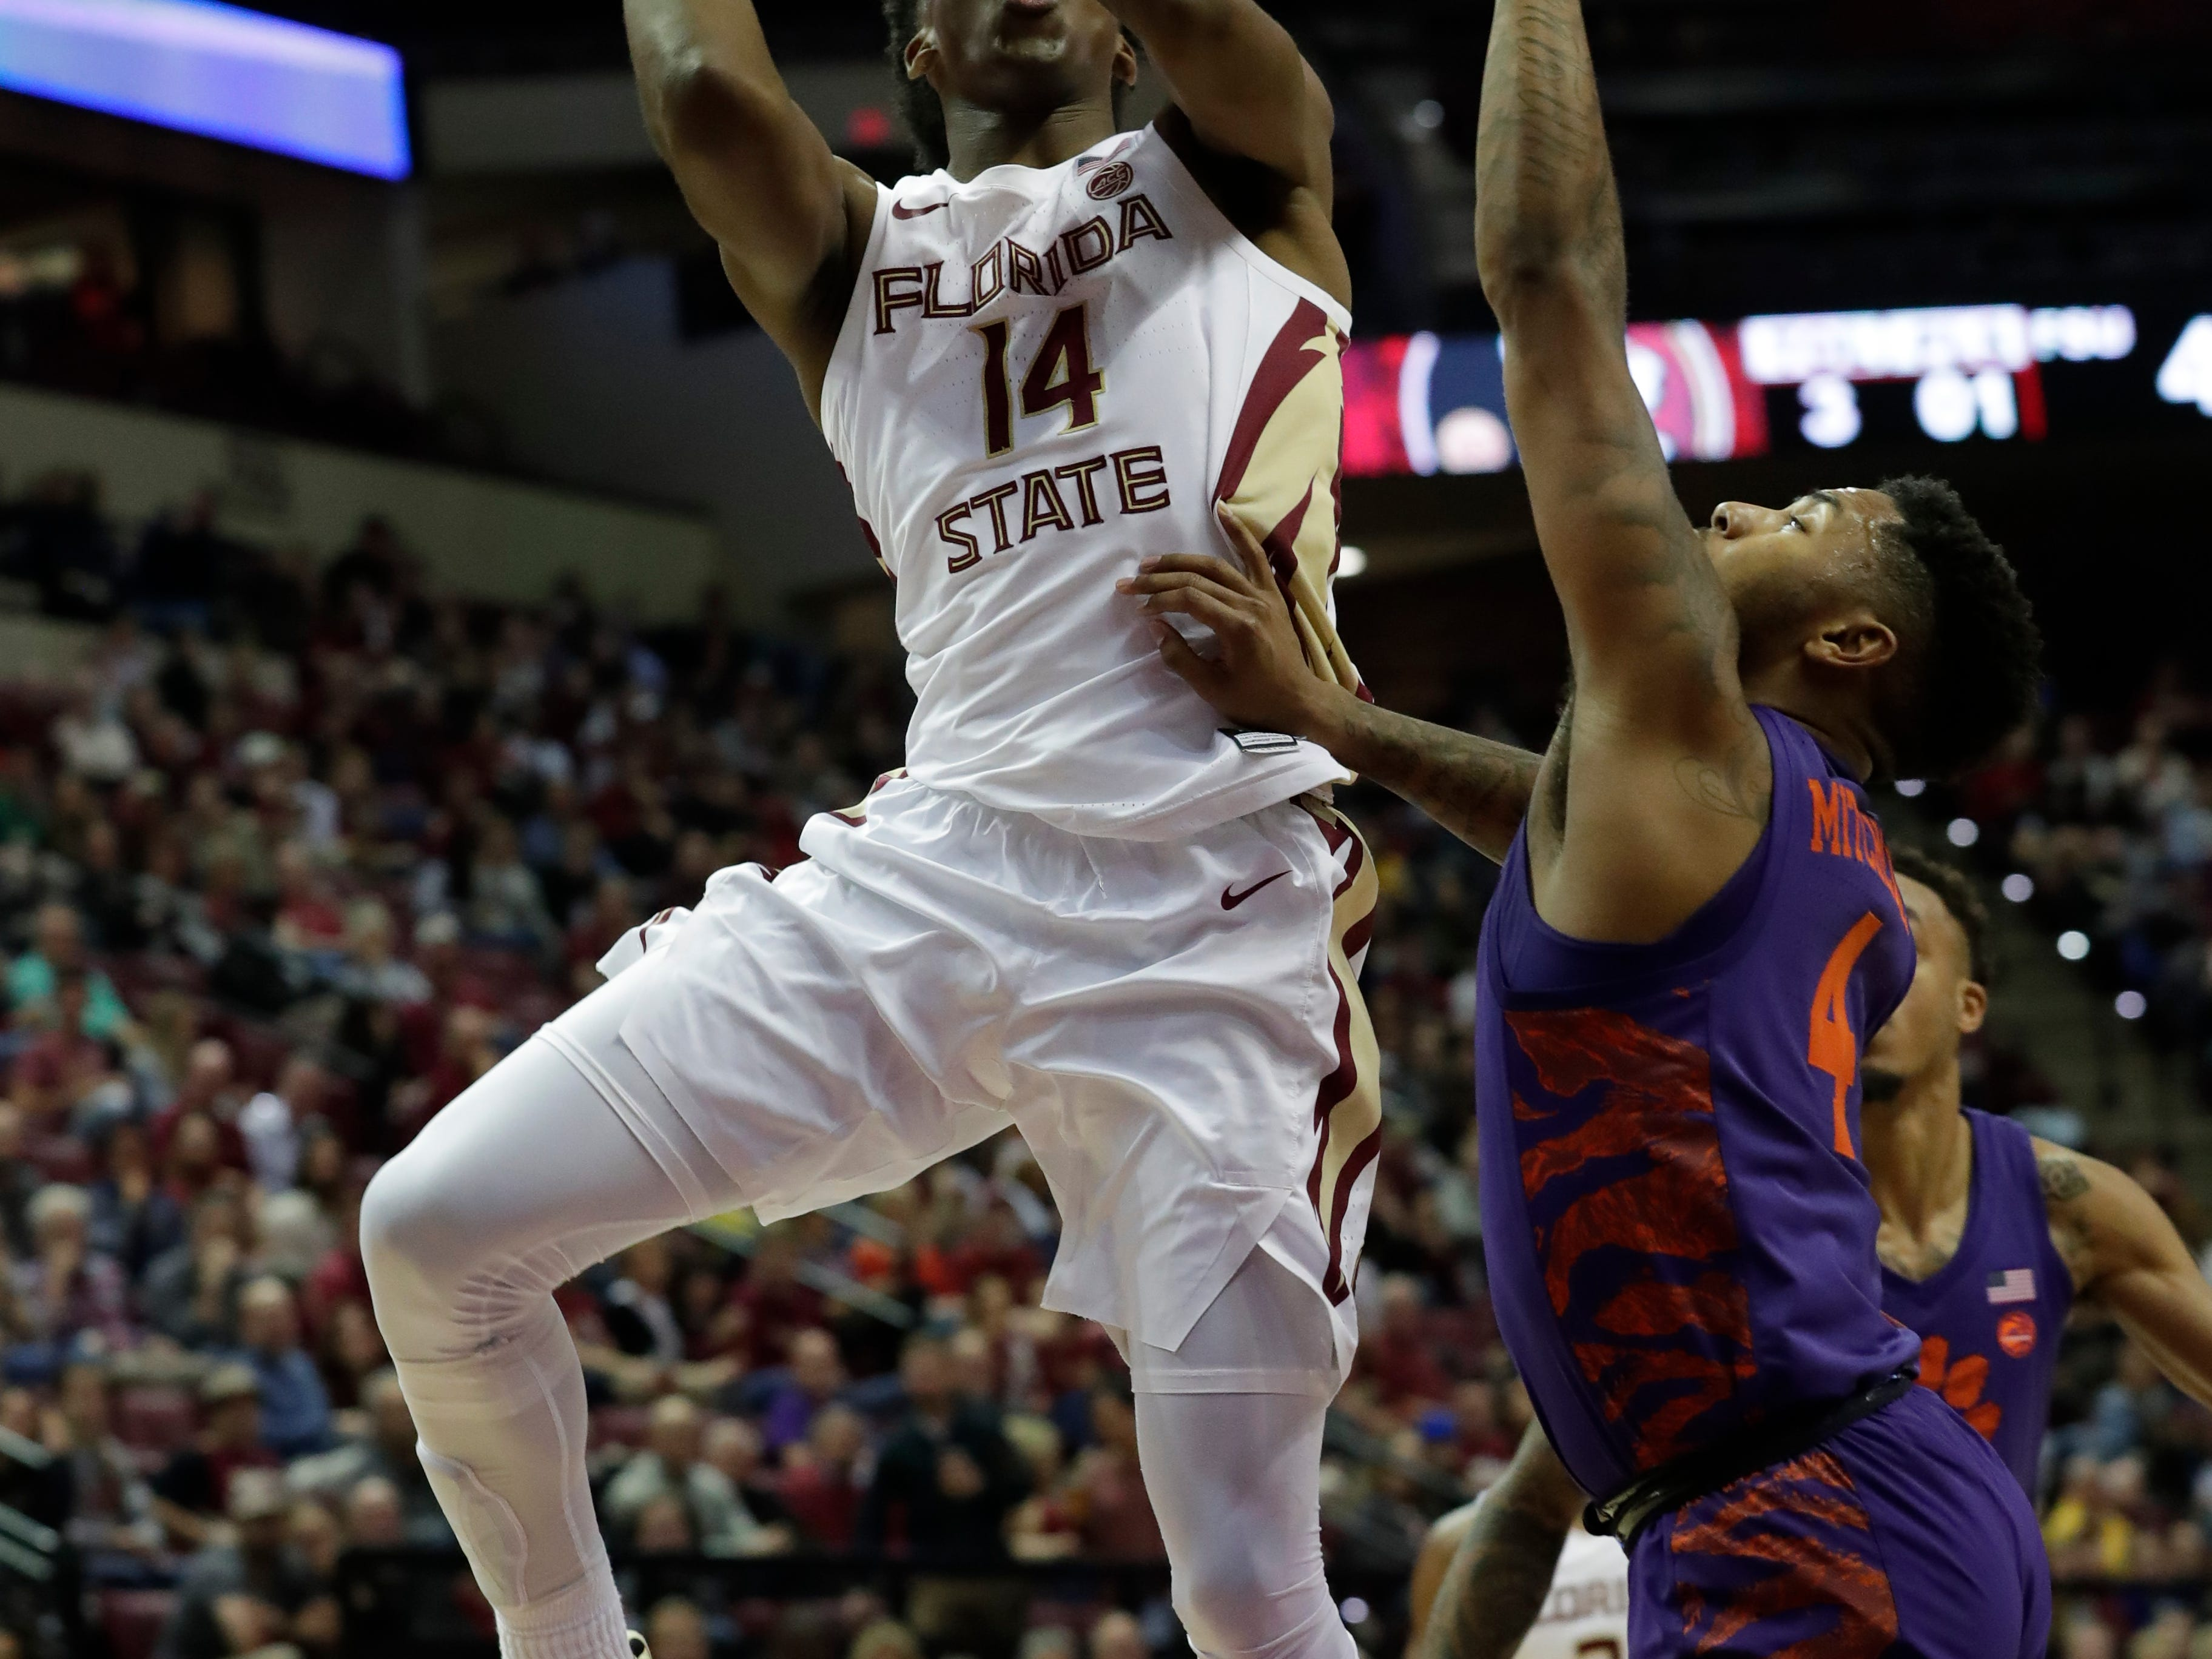 Florida State Seminoles guard Terance Mann (14) shoots for two while Clemson Tigers guard Shelton Mitchell (4) tries to block his shot. The Florida State Seminoles face off against the Clemson Tigers at the Tucker Civic Center, Tuesday, Jan. 22, 2019.